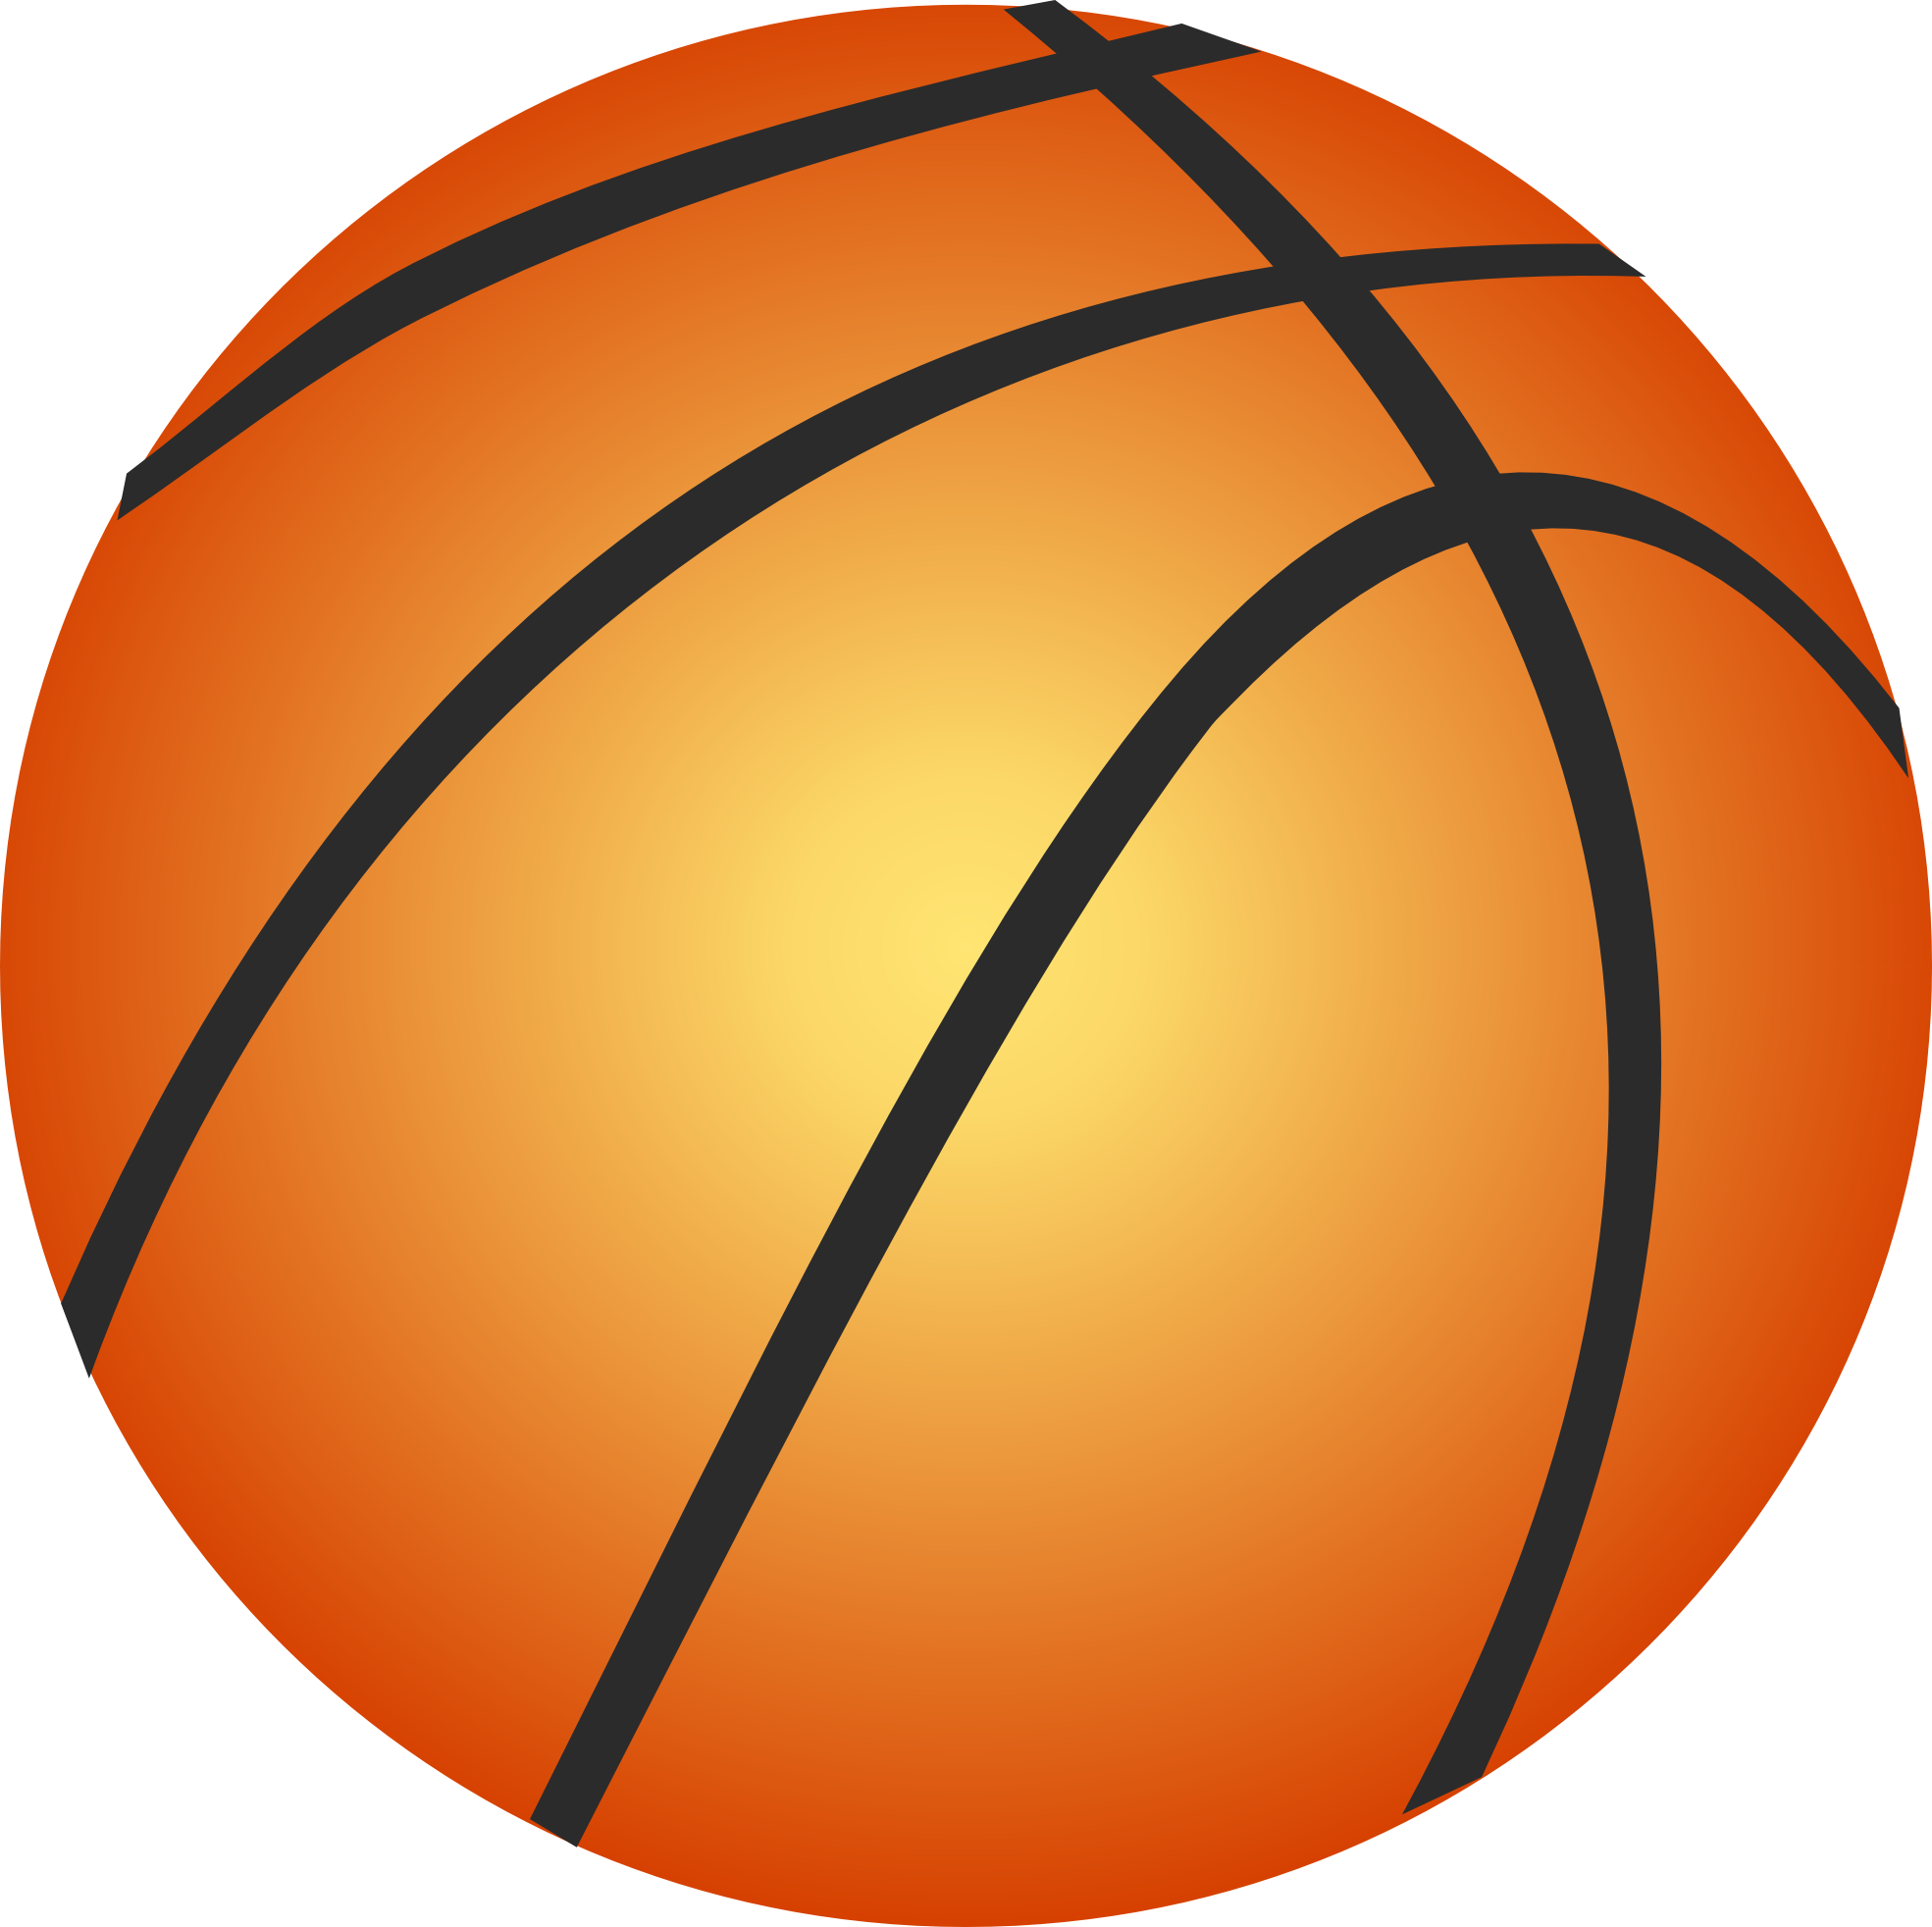 Basketball Court Clipart Black And White-basketball court clipart black and white-5